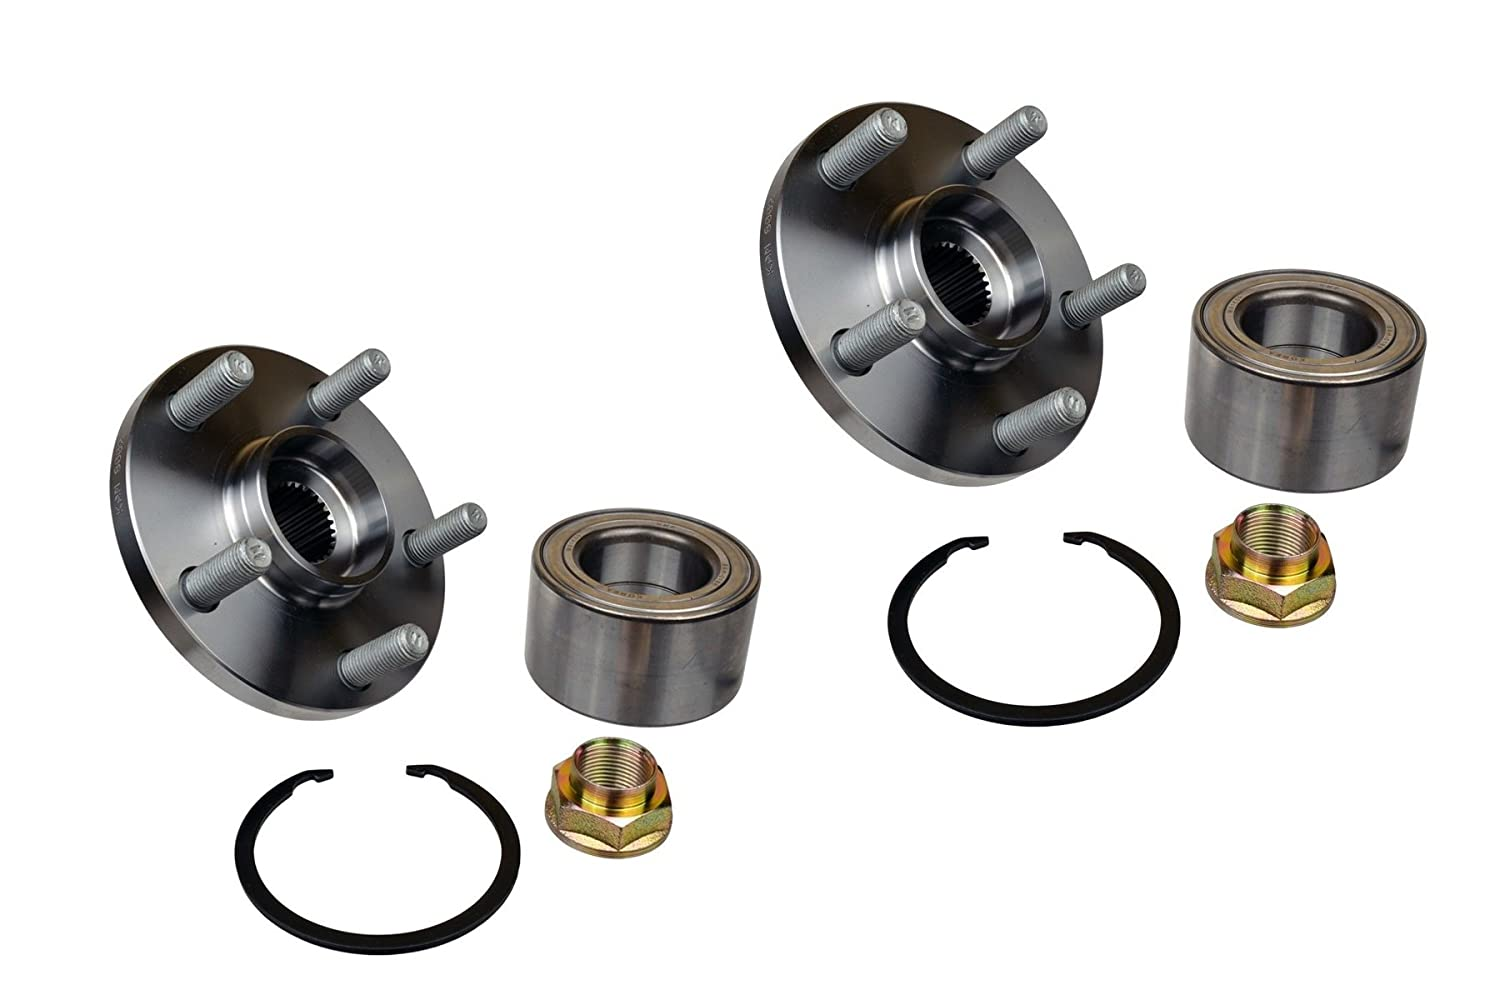 2008 fits Toyota Corolla Front Wheel Bearing Two Bearings Included With Two Years Manufacturer Warranty